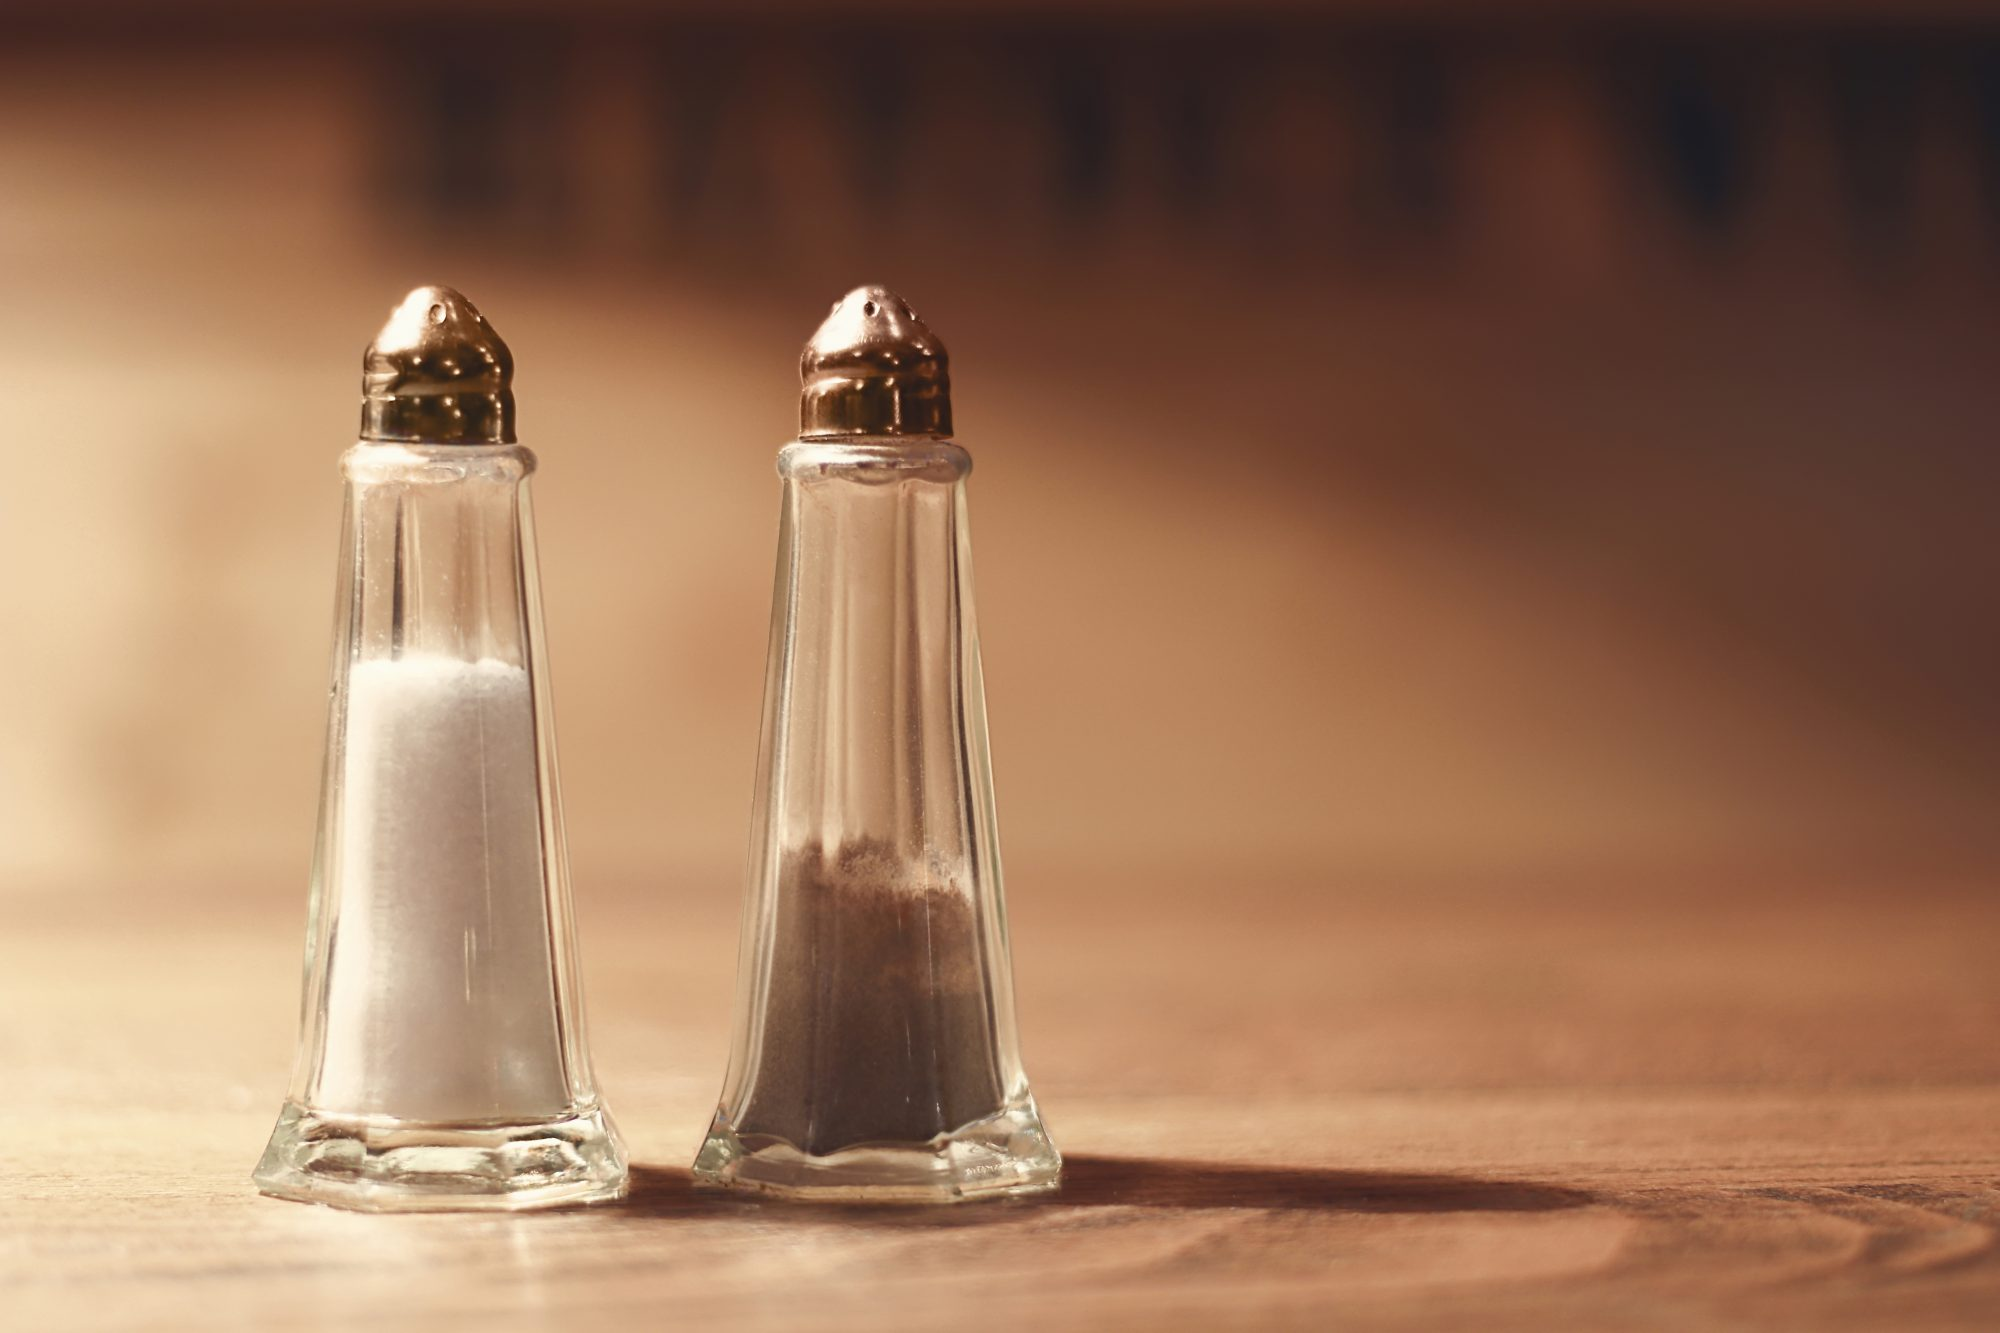 This Salt-and-Pepper Shaker Hack Is the Only Internet Thing That Has Ever Blown My Mind